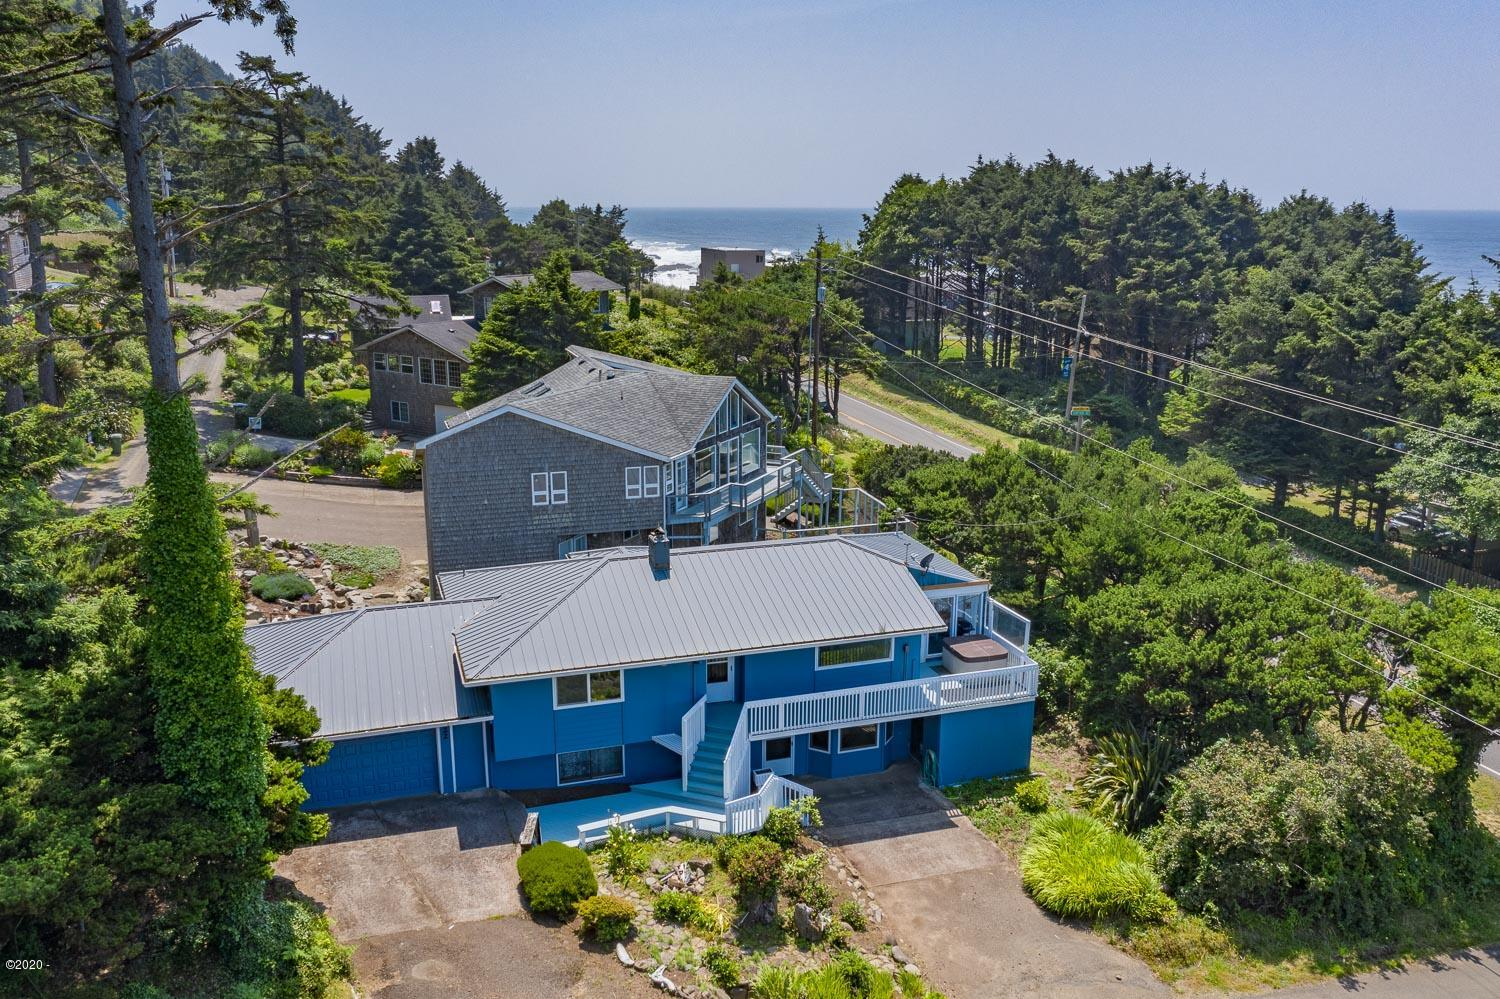 22 Crestview Dr, Yachats, OR 97498